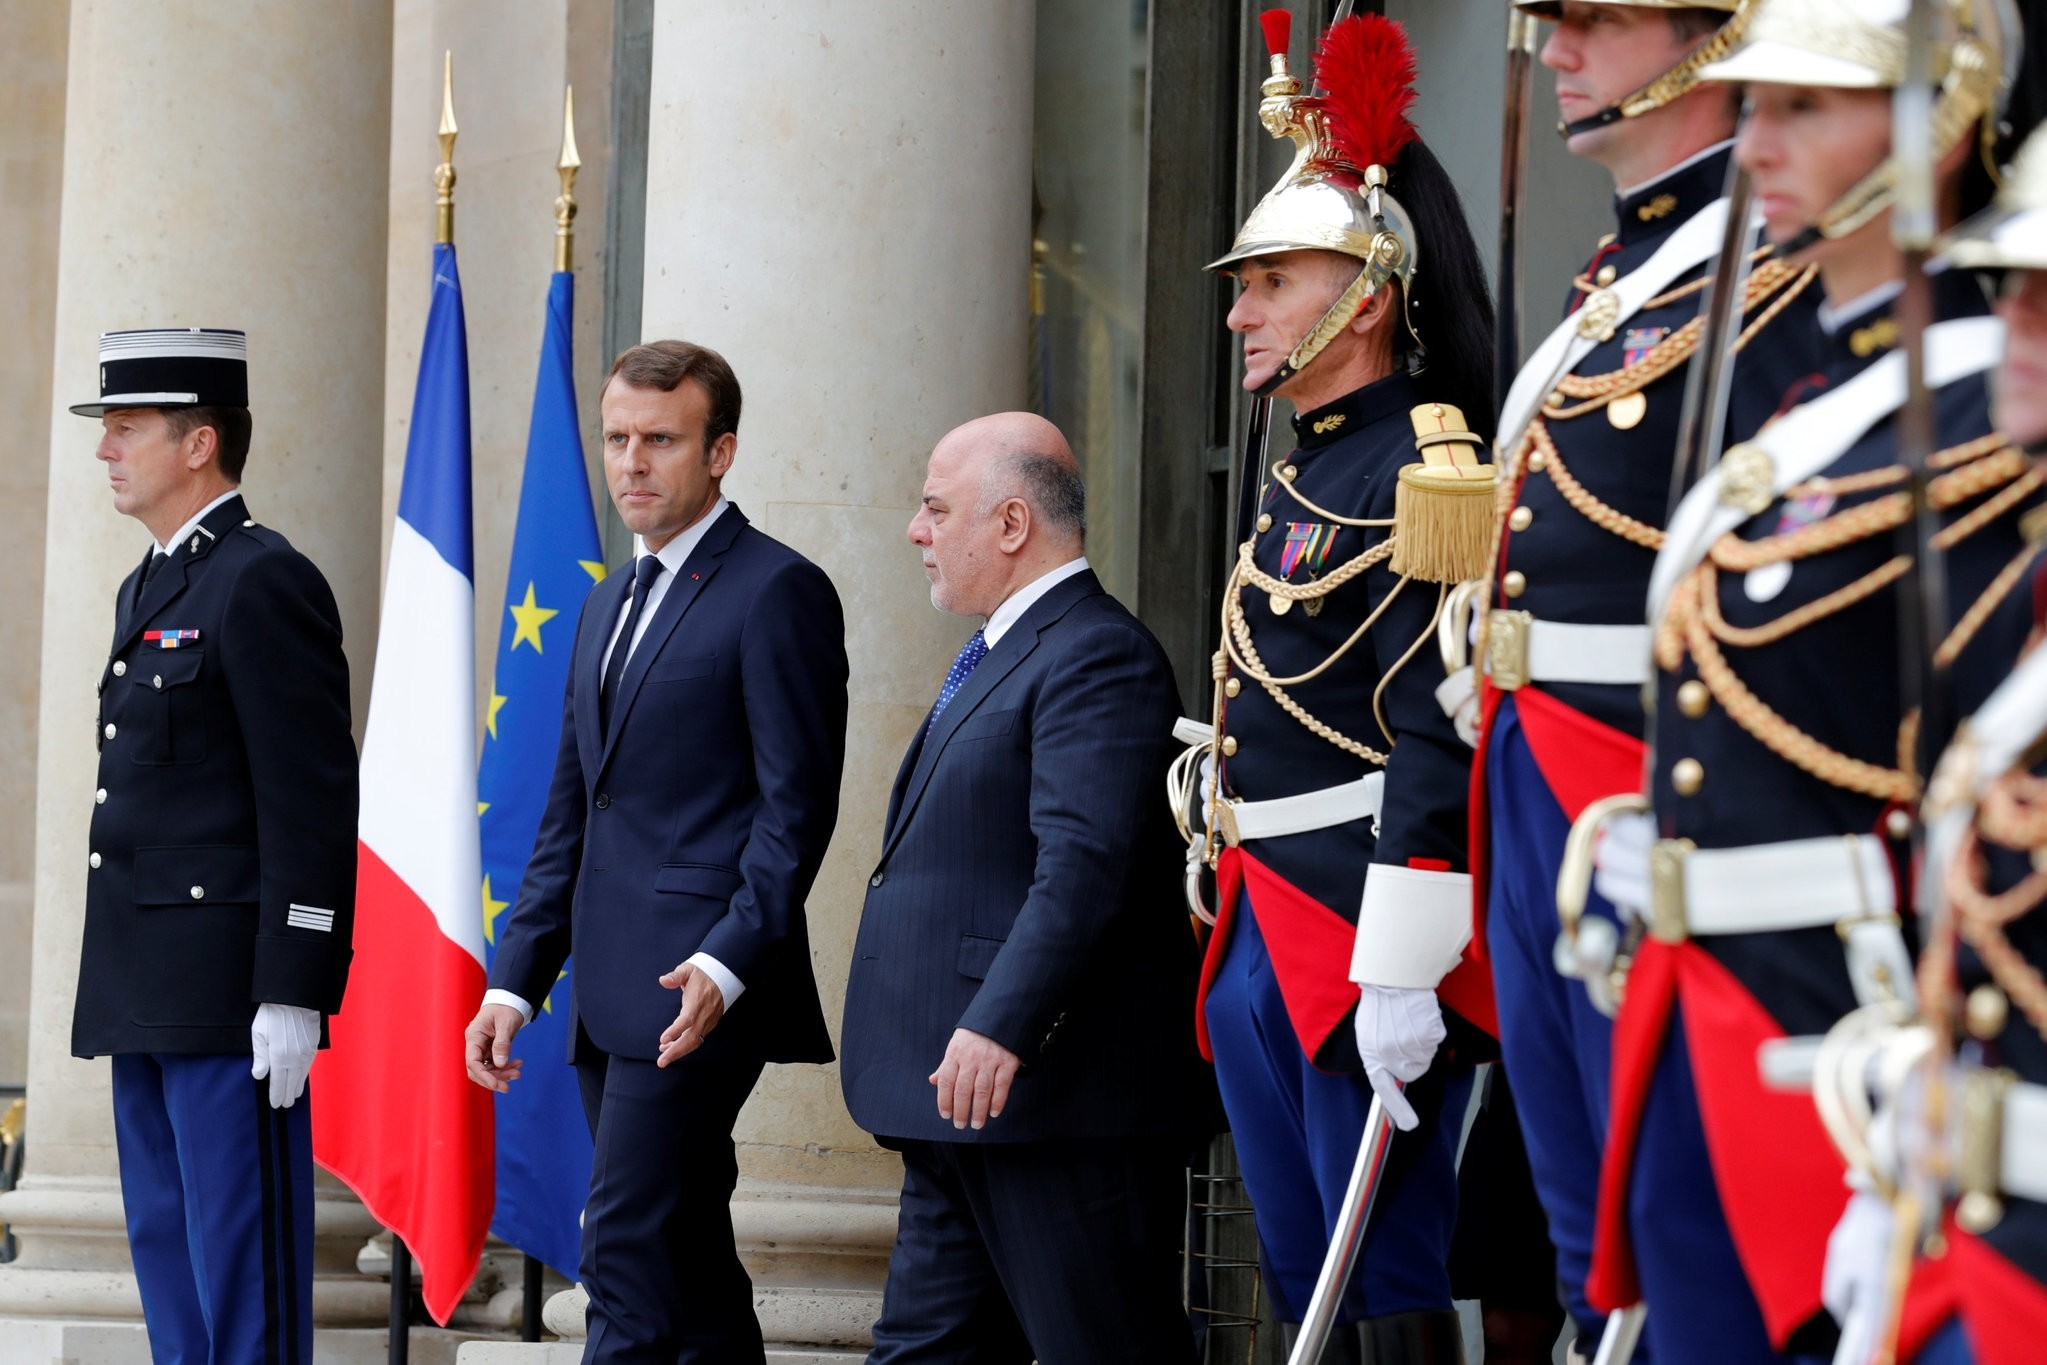 French President Emmanuel Macron accompanies Iraqi Prime Minister Haider Al-Abadi as he leaves the Elysee Palace in Paris, France, October 5, 2017.  (REUTERS Photo)